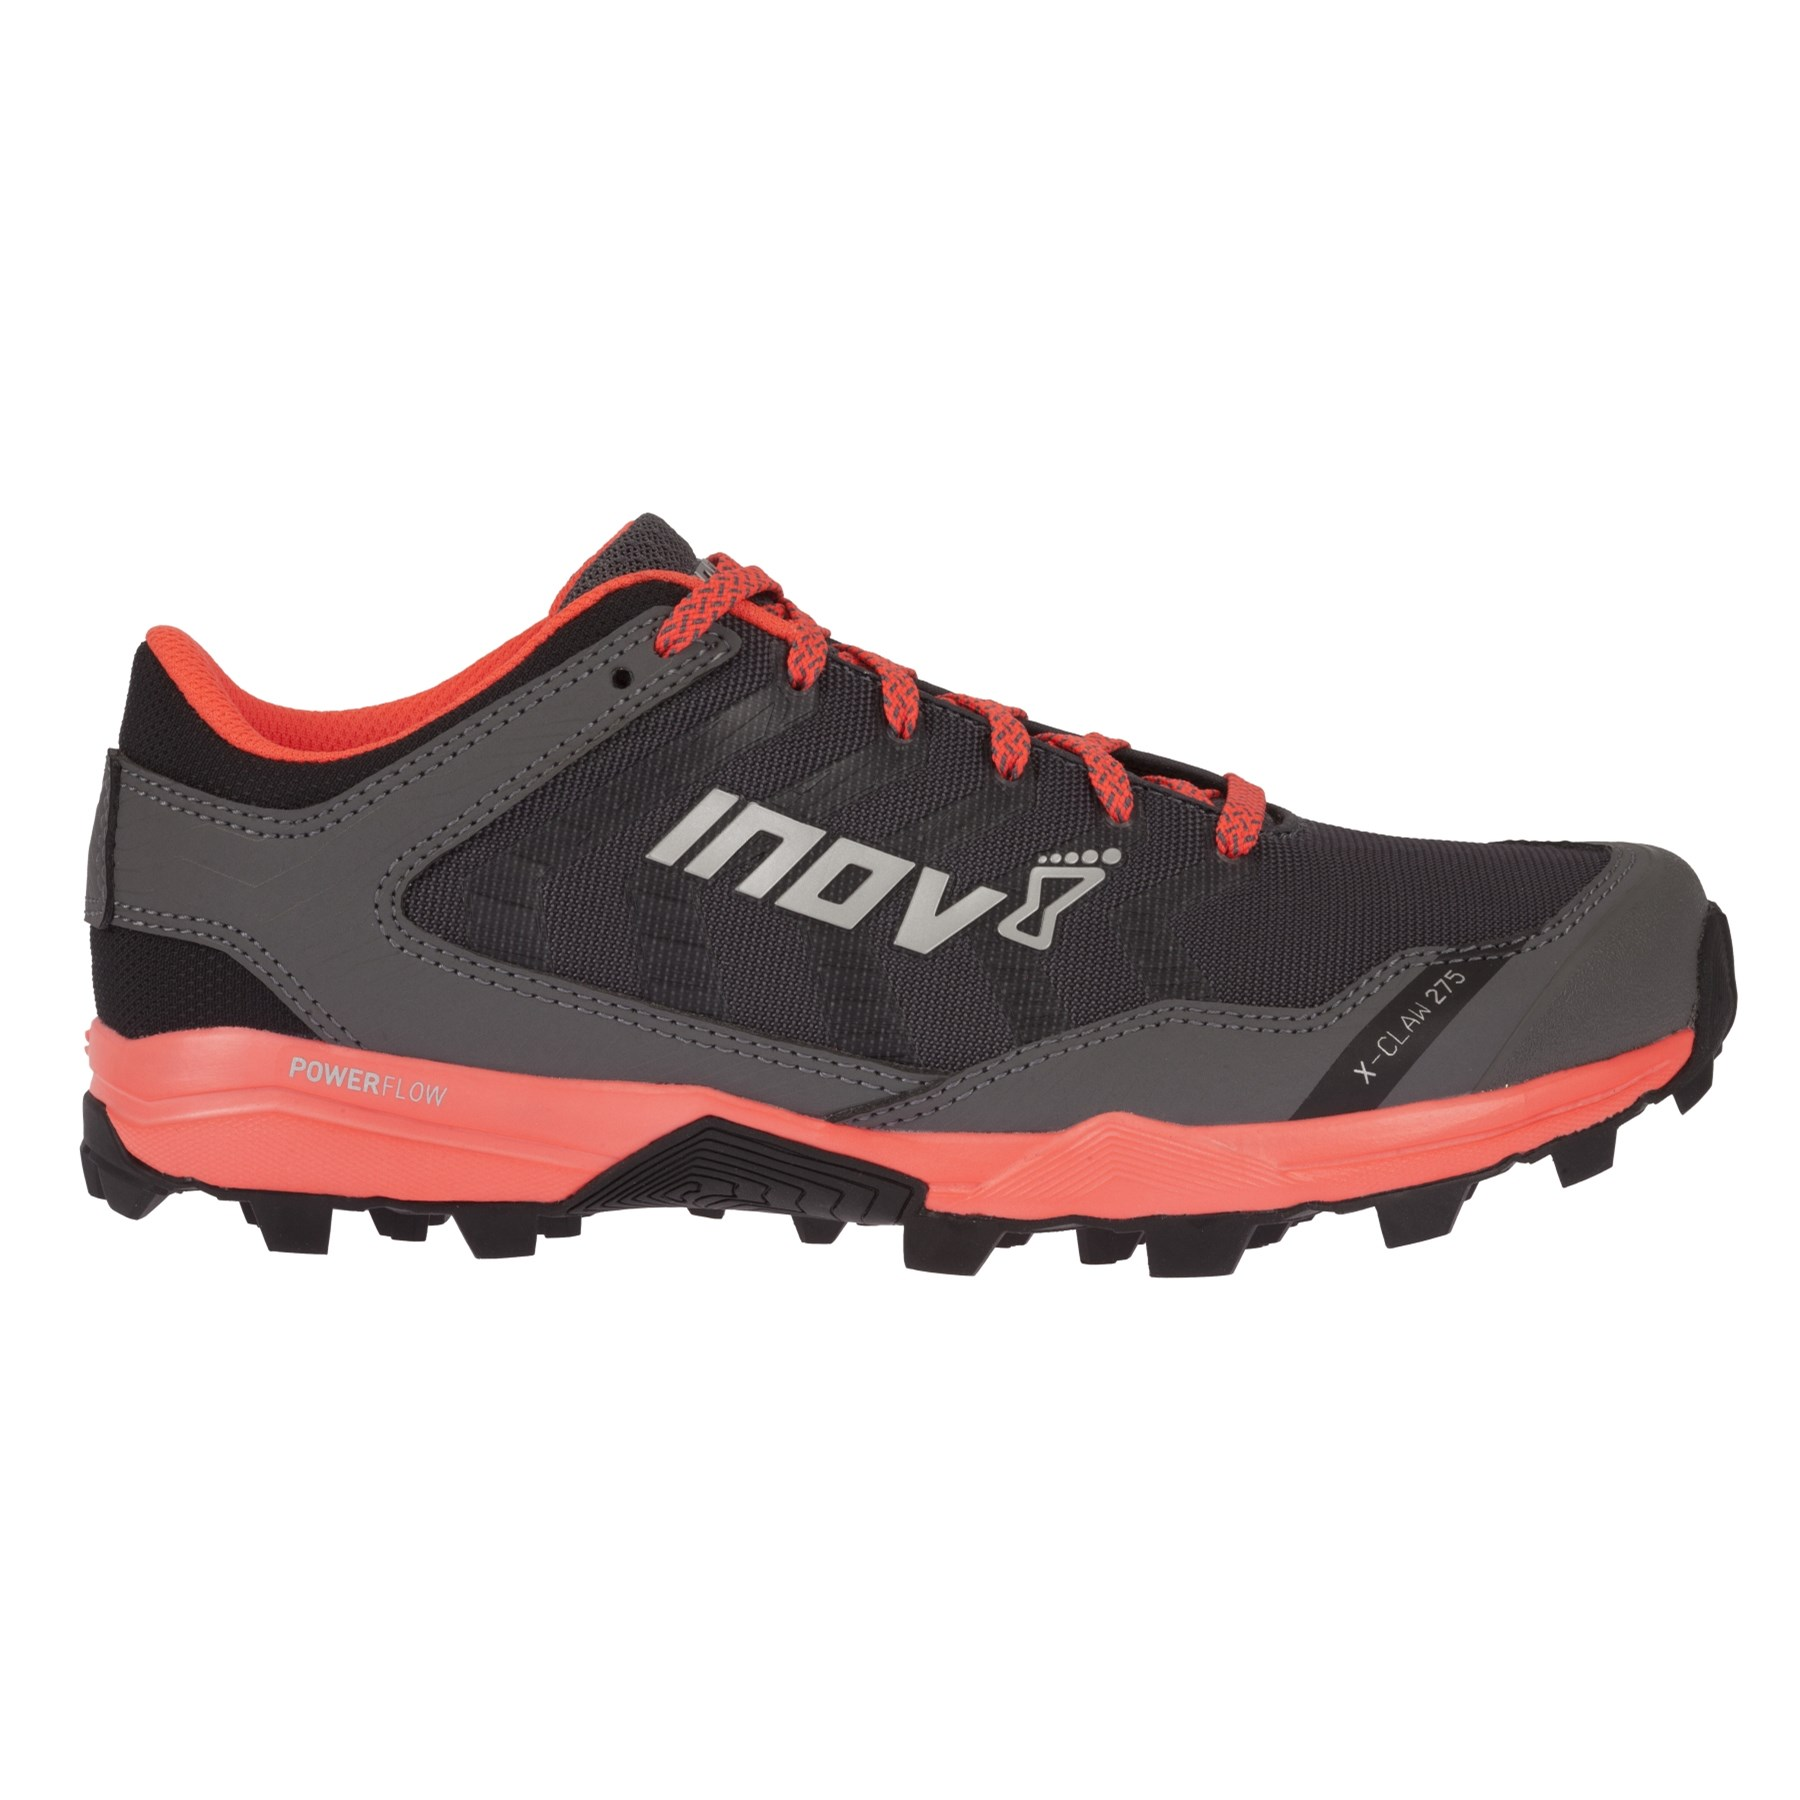 Inov8 Women's X-claw 275 Grey/Coral UK 5.5/EU 38,5